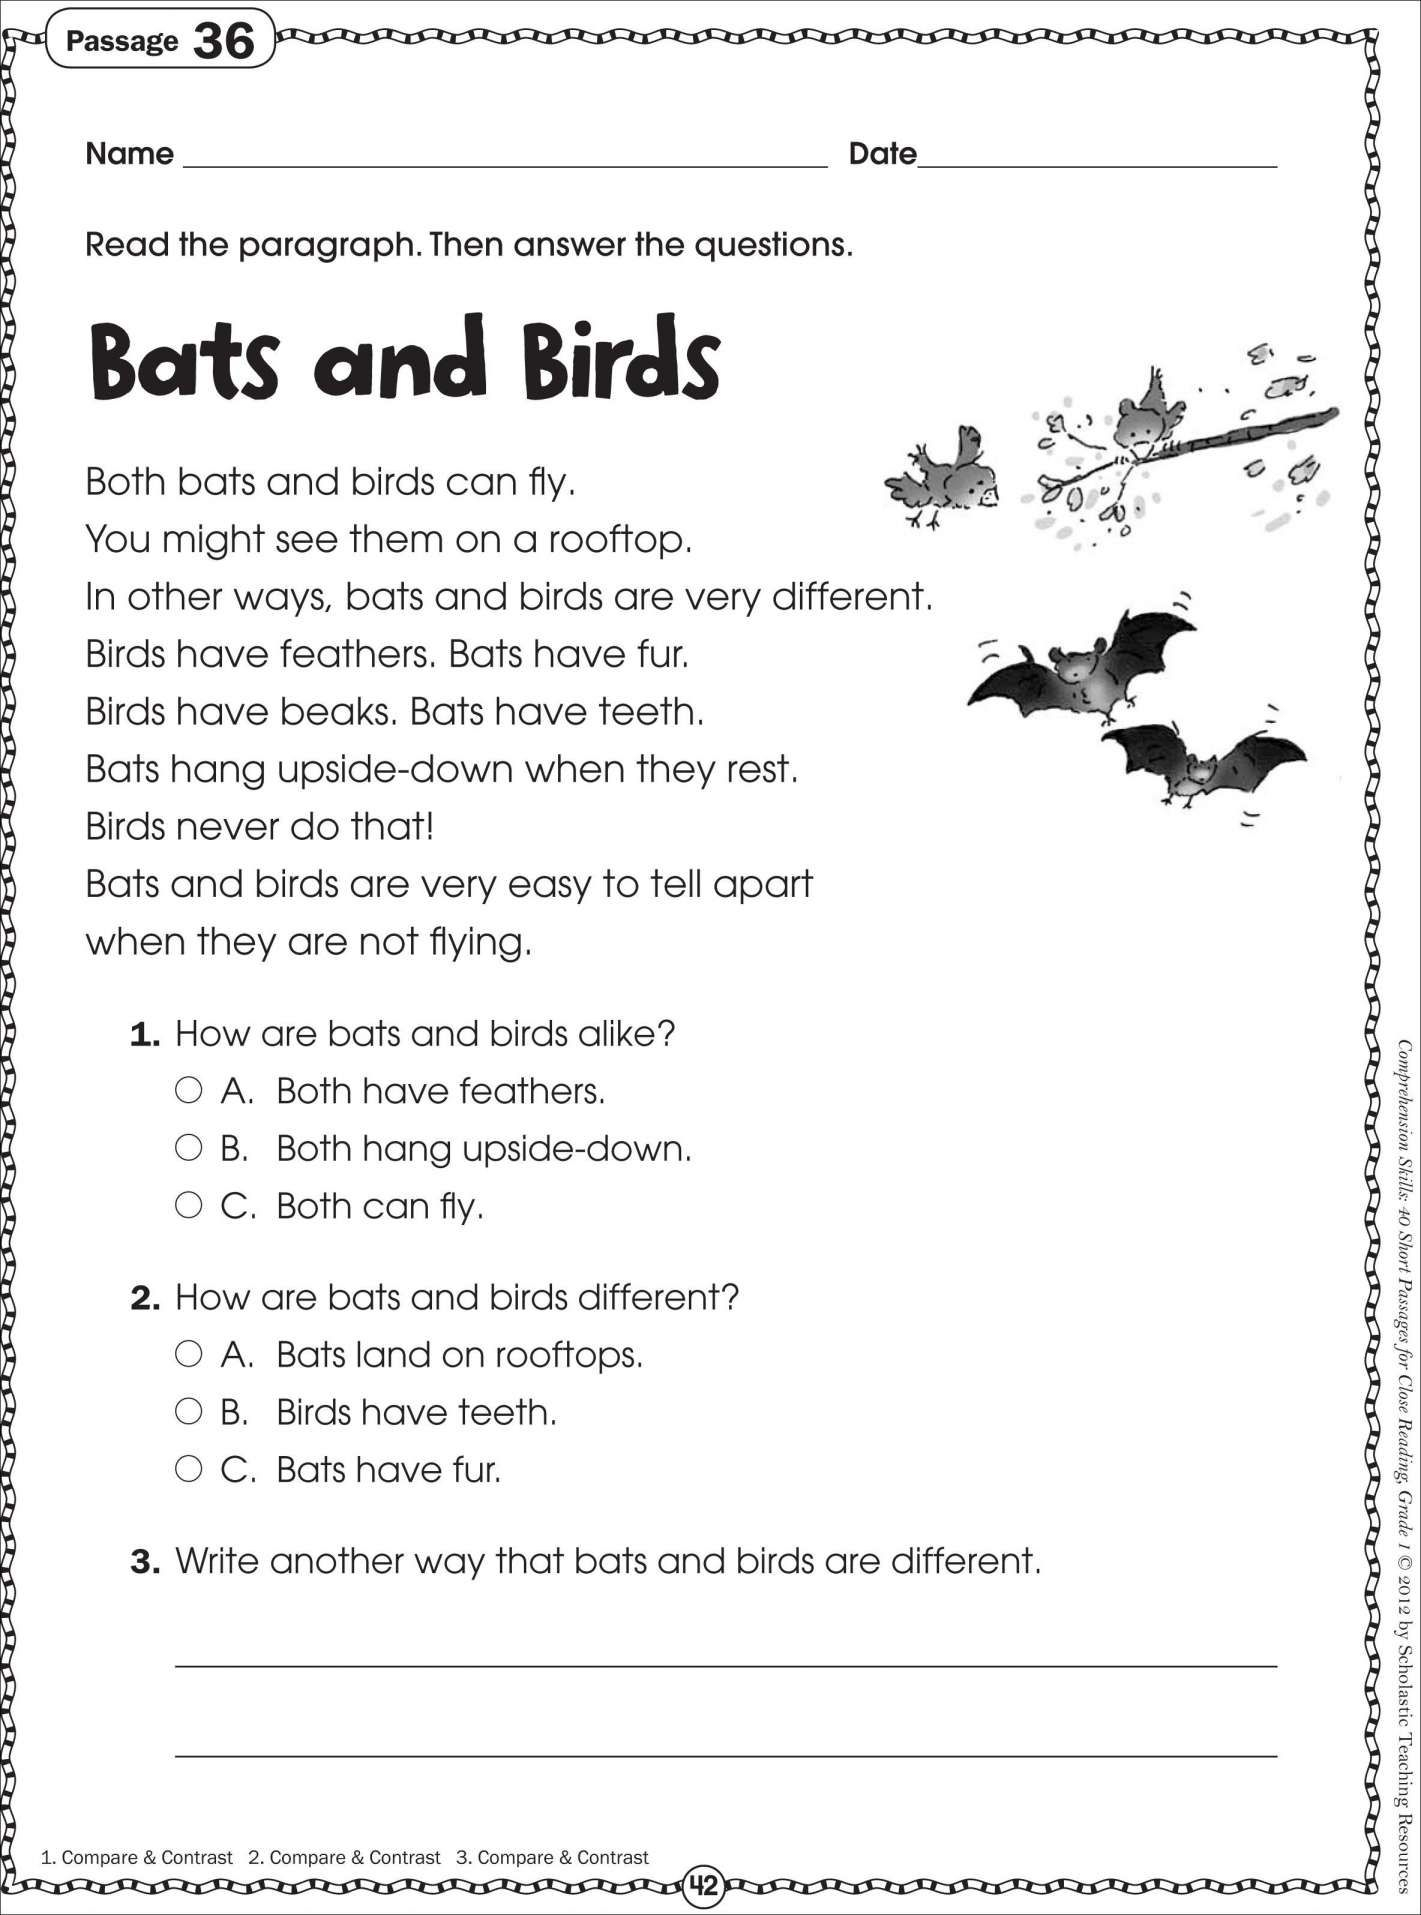 Reading Exercises For 2Nd Graders